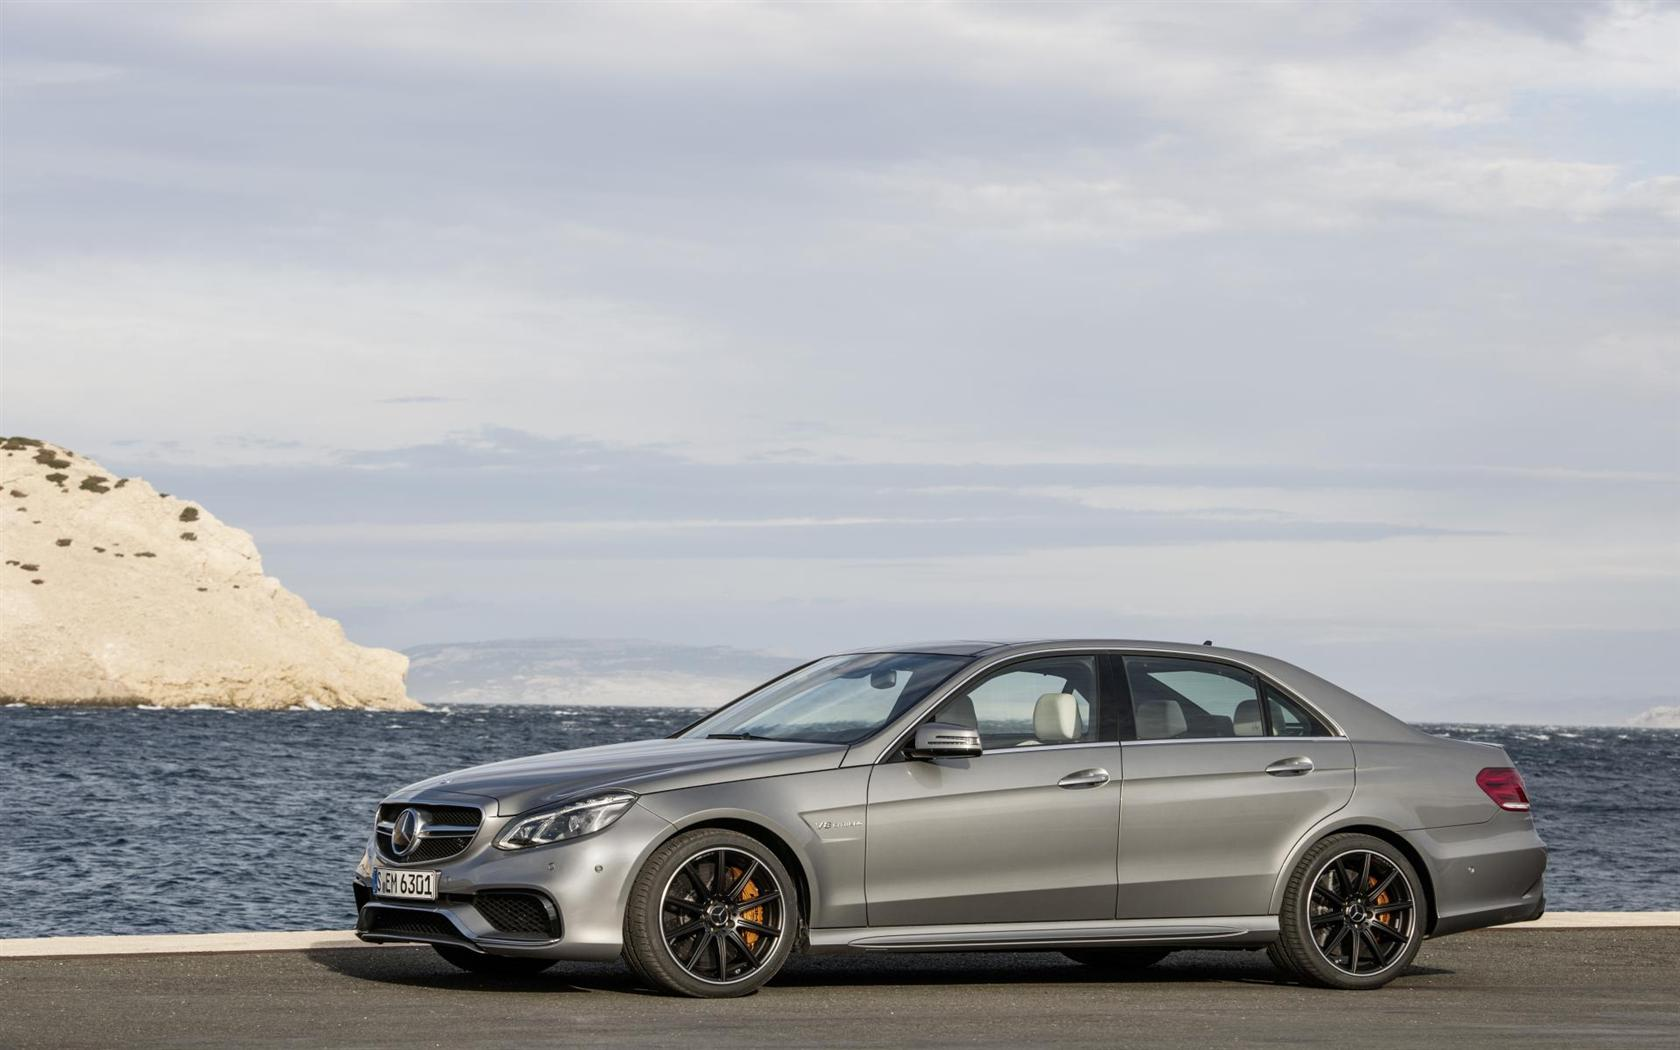 2014 mercedes benz e63 amg s model images photo mercedes for 2014 mercedes benz e class e63 amg s model